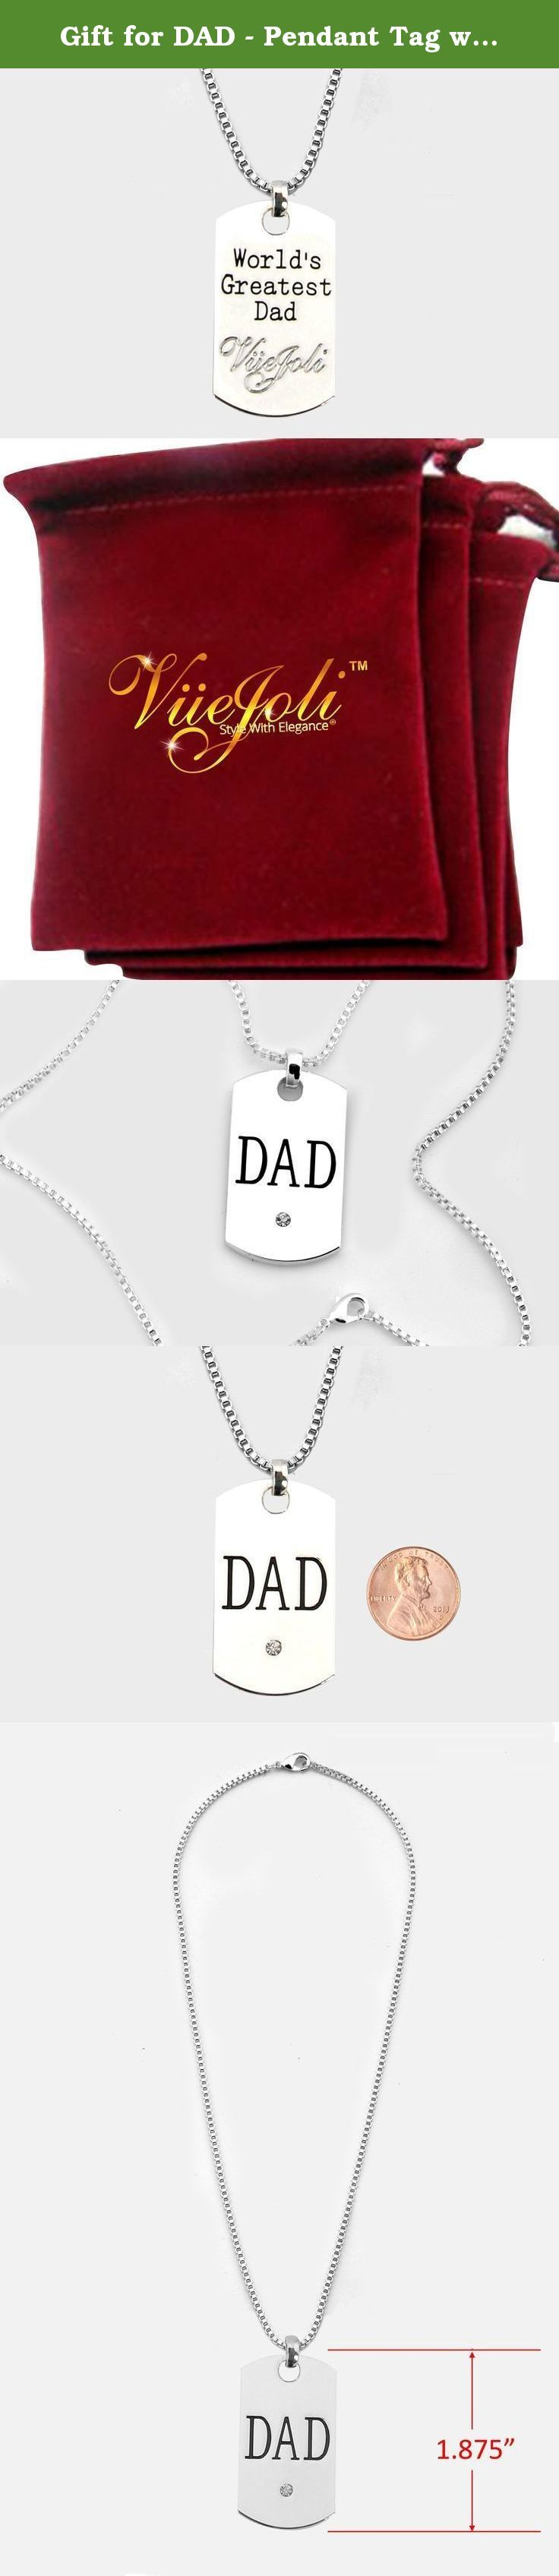 """Gift for DAD - Pendant Tag with crystal - Men's Dog Tag Key Tag Pendant w/ chain. Inscription WORLD's GREATEST DAD! Hottest Dad Gift. Pendant is high quality and thicker than other ones. Gift for Dad - This is a perfect gift for your dad. This Gift comes with inscription """"World's Greatest Dad"""" Pendant: """"DAD"""" etched on the front and """"World's Greatest Dad"""" on the back. VueJoli Trademark Engraved on Back for Authenticity This Pendant is THICKER unlike other thin ones sold by competitors…"""